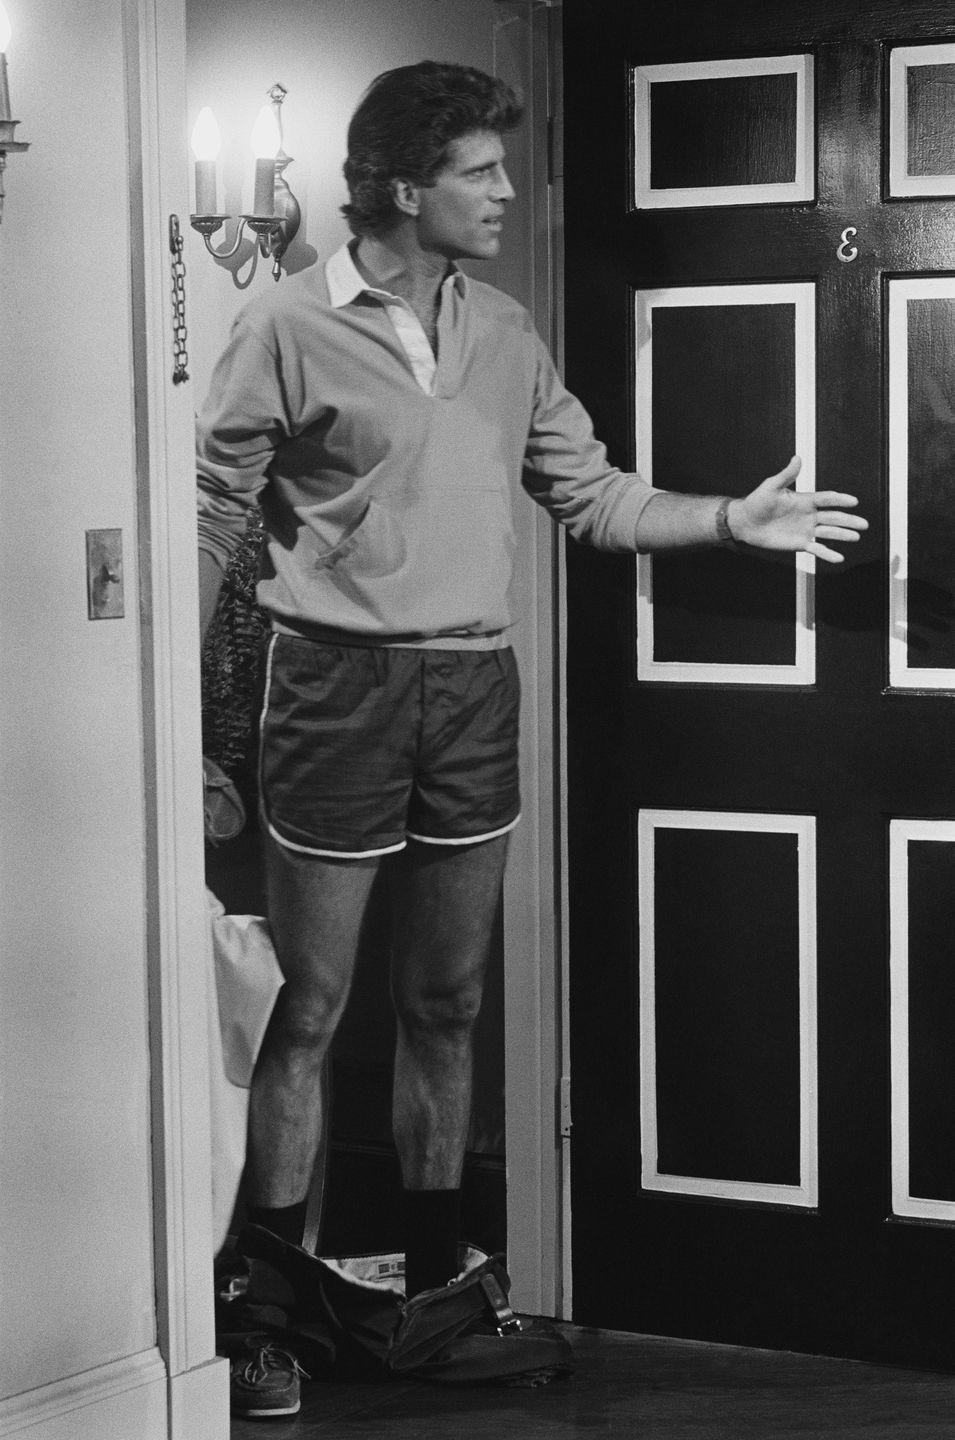 <p>Danson, in an episode of <em>Cheers</em>, shows off how to wear shorts as underpants while making a memorable (and borderline creepy) entrance. </p>